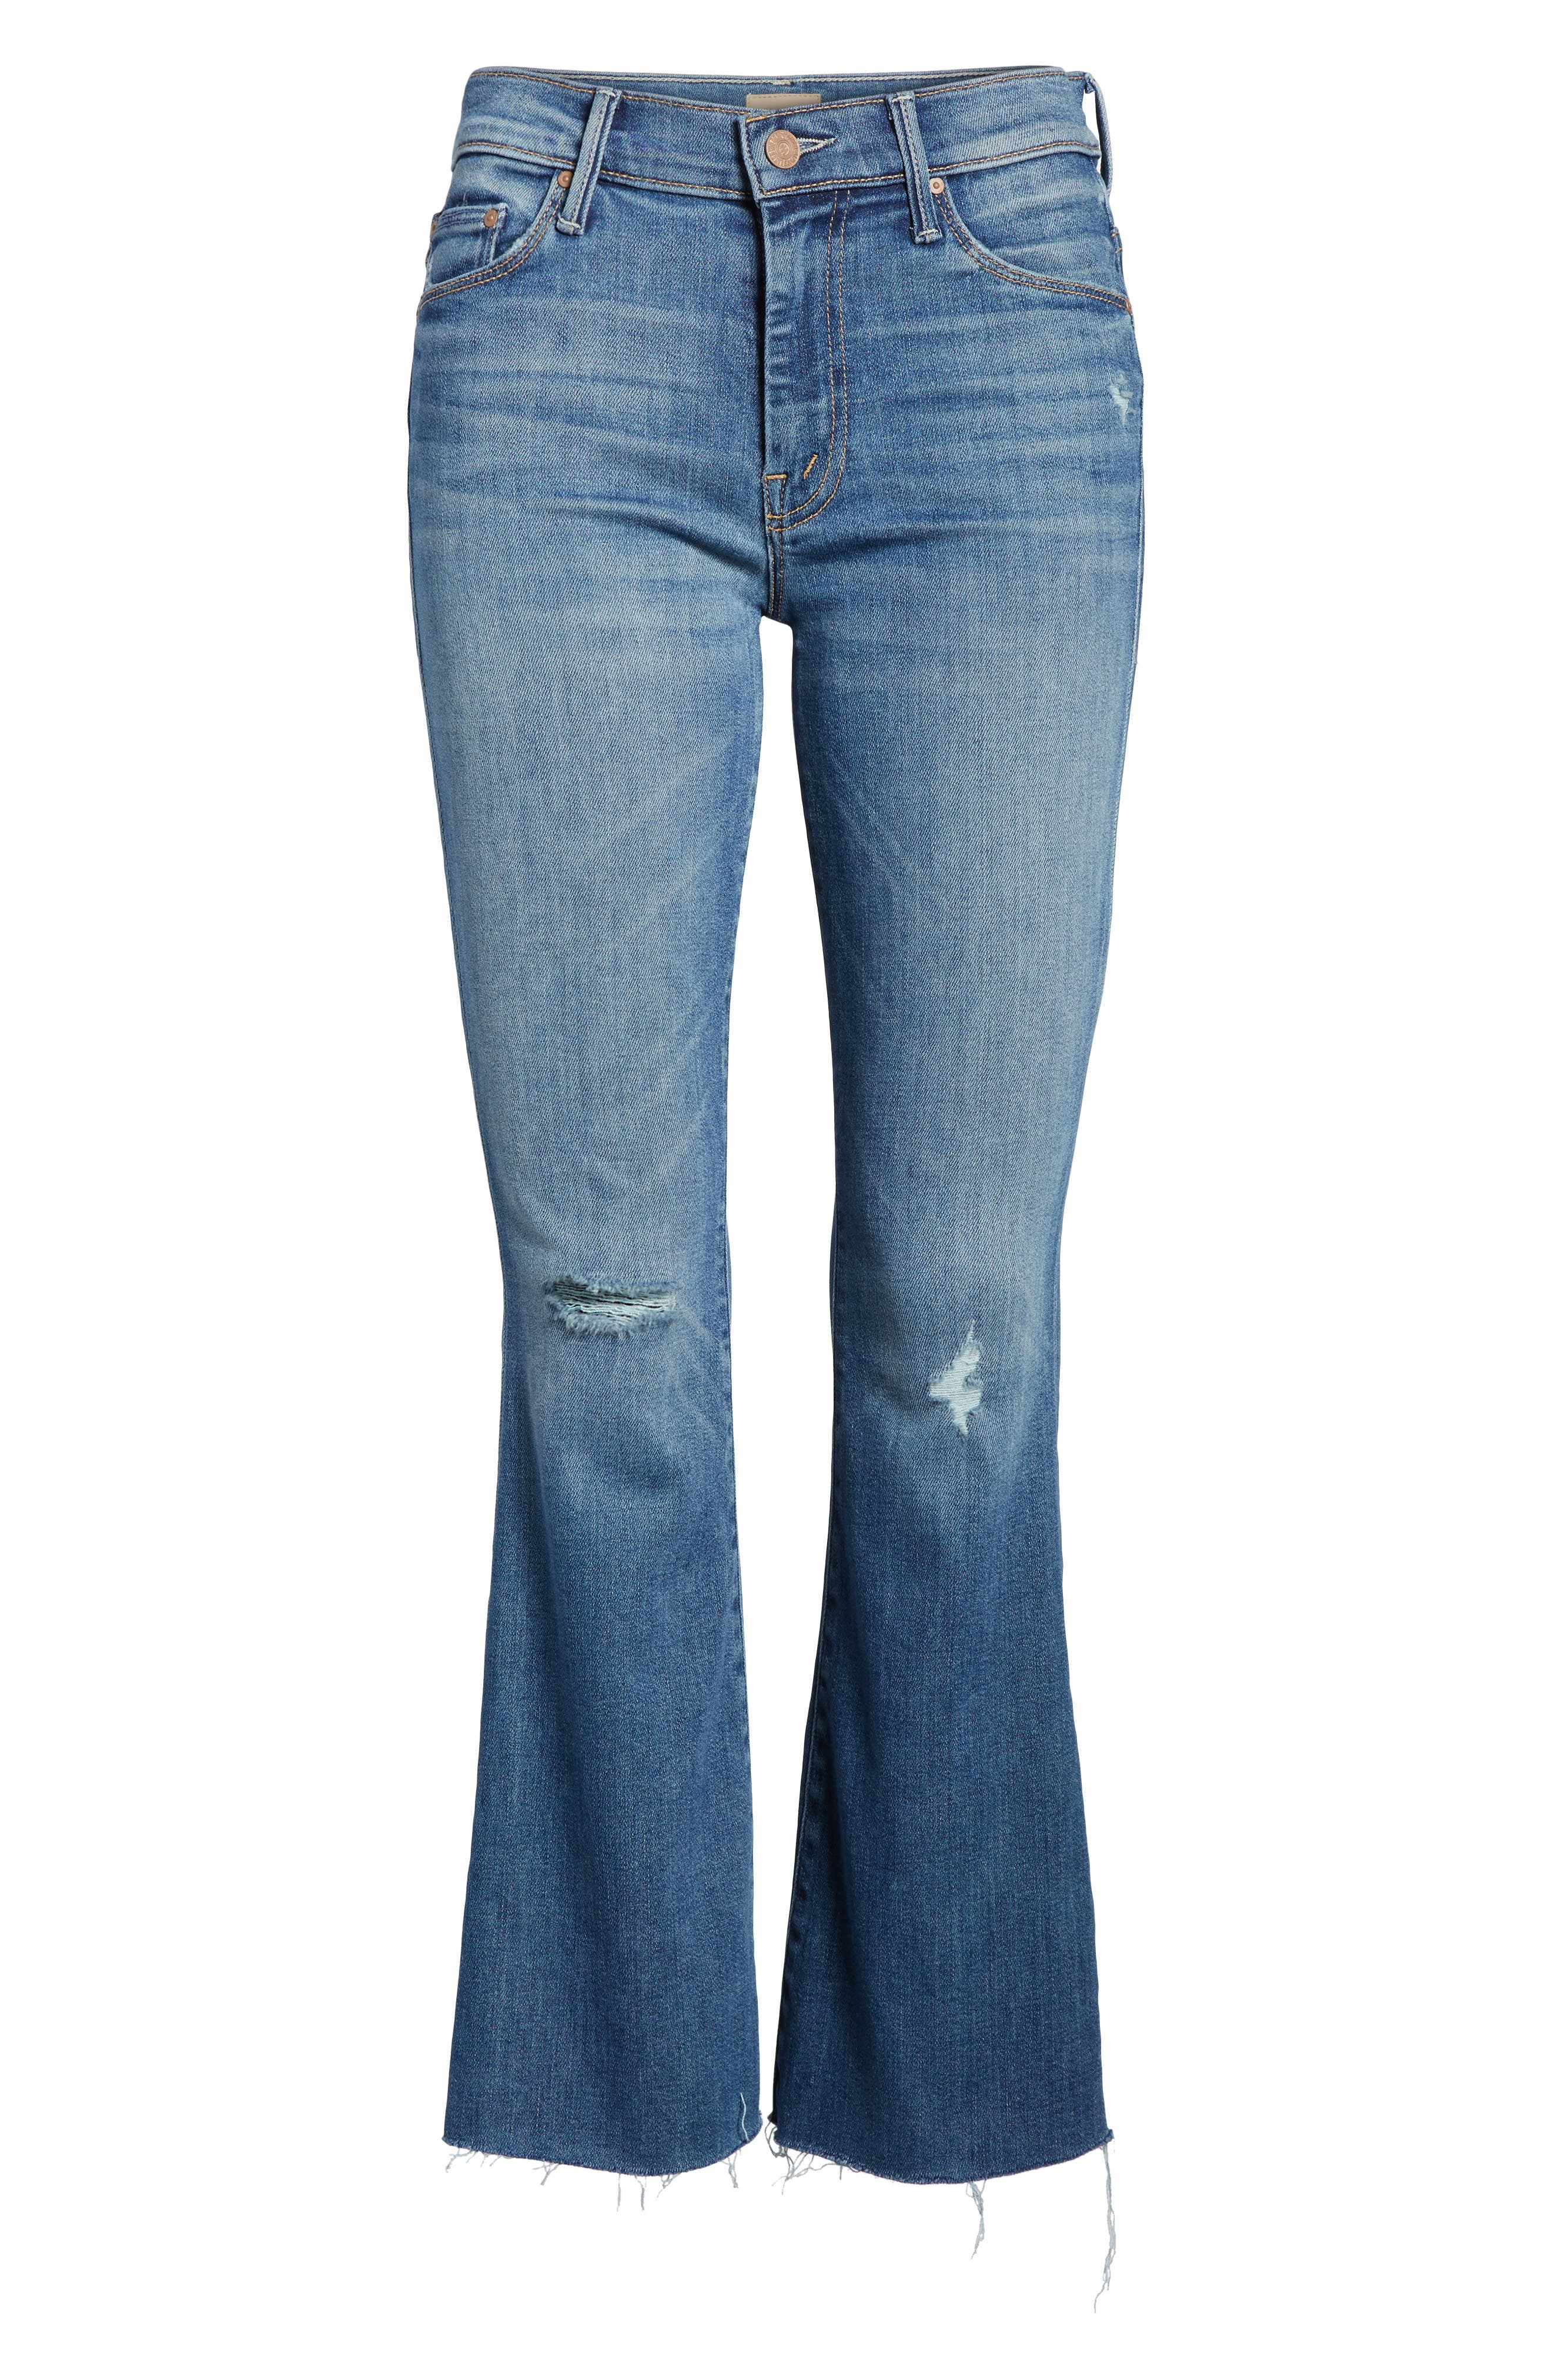 MOTHER, Frayed Ankle Jeans, Alternate thumbnail 7, color, 420